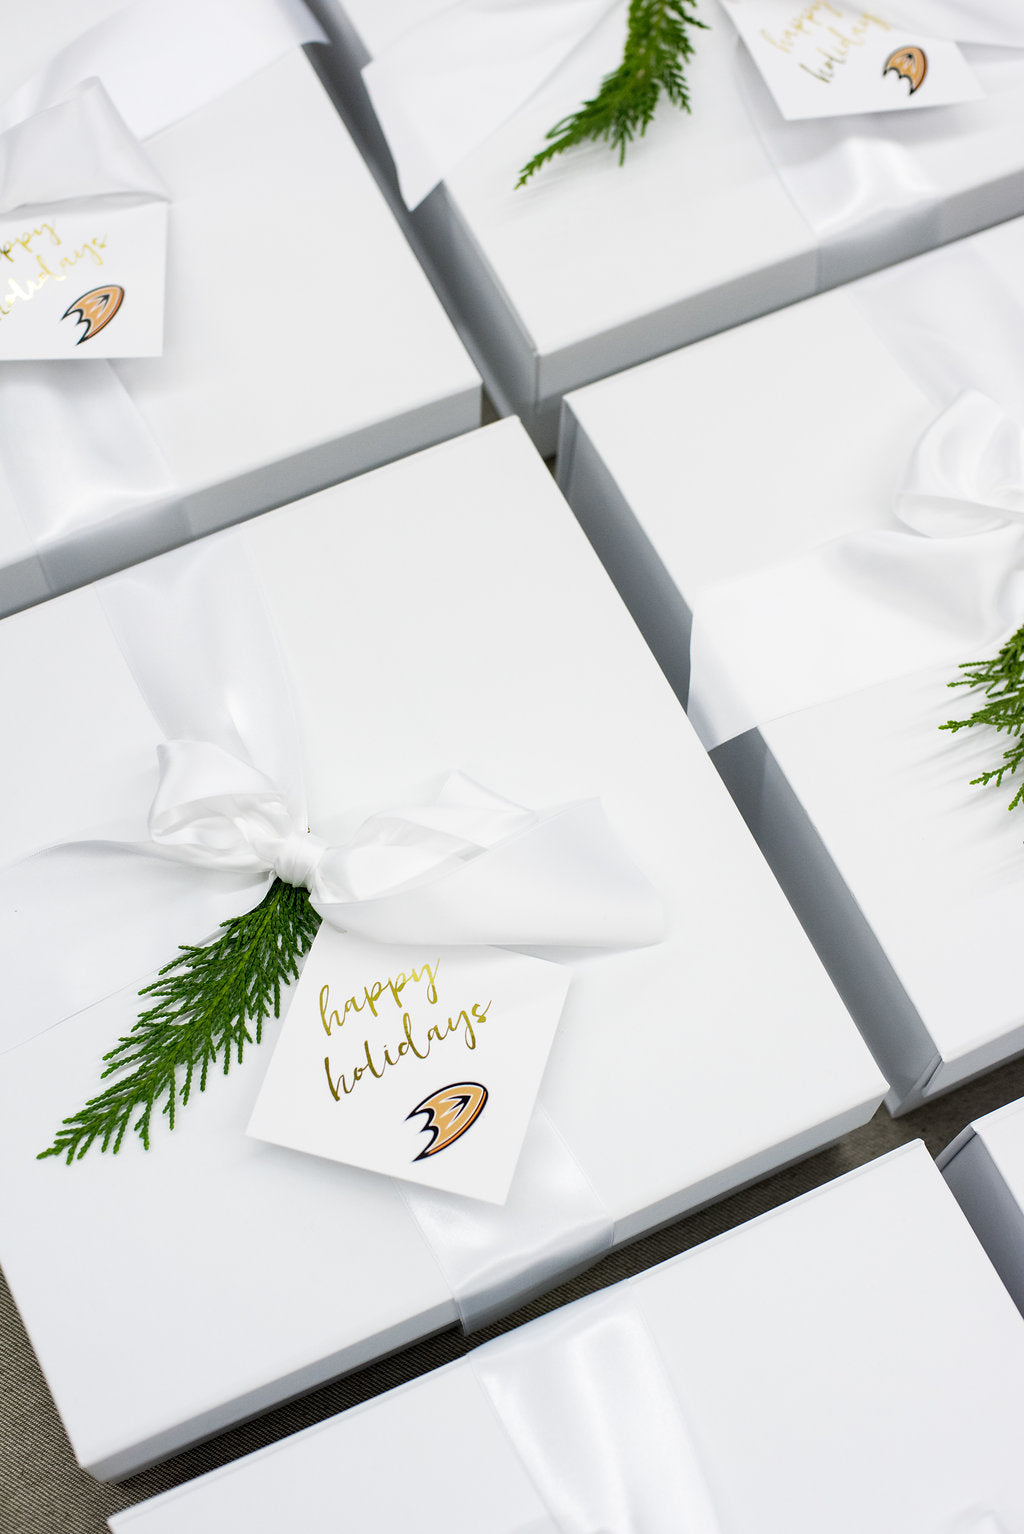 Luxury corporate holiday gifts